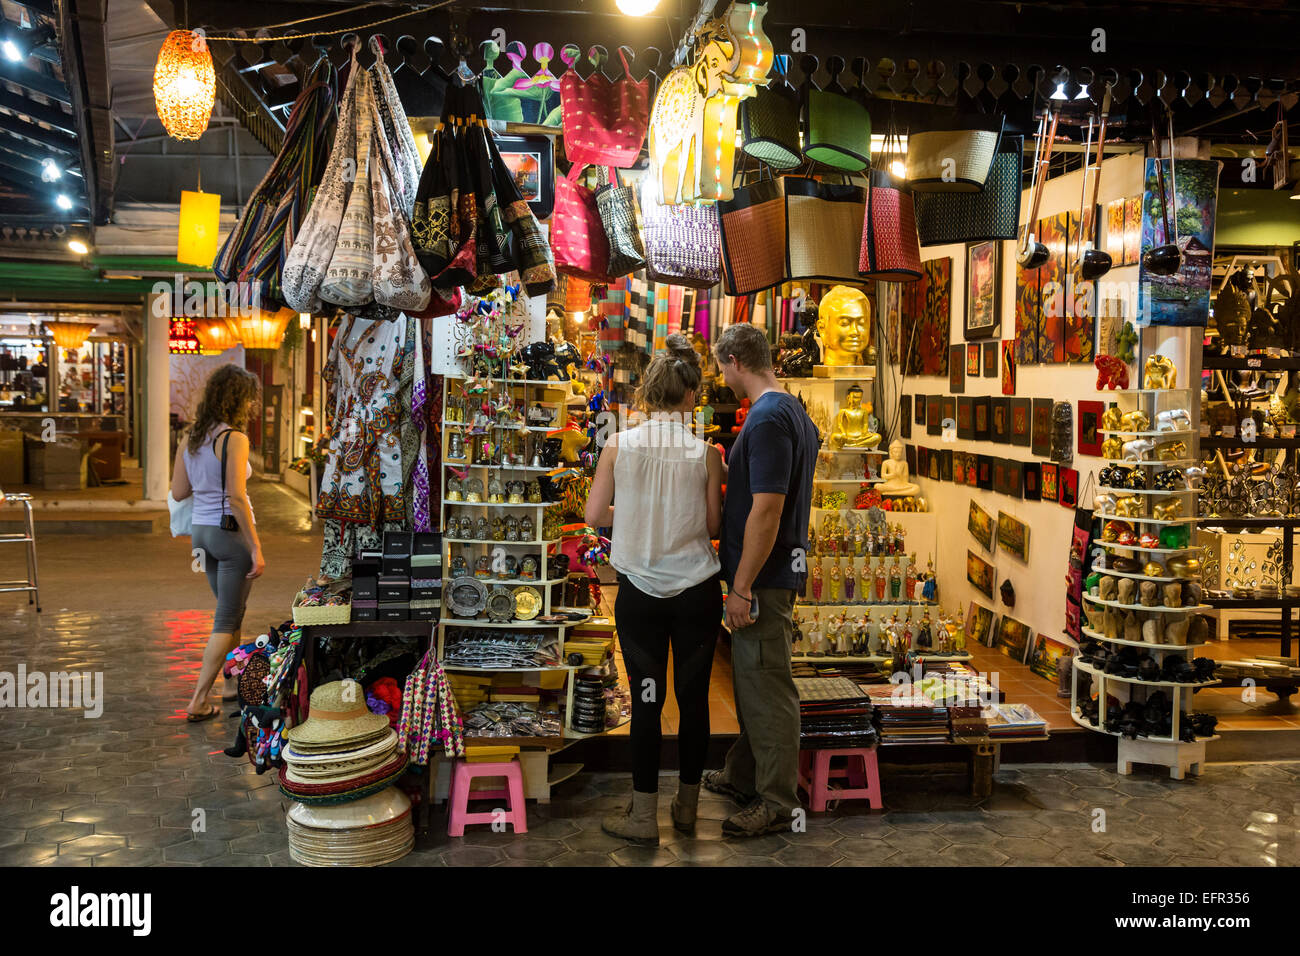 Tourists at the Night Market, Siem Reap, Cambodia. - Stock Image